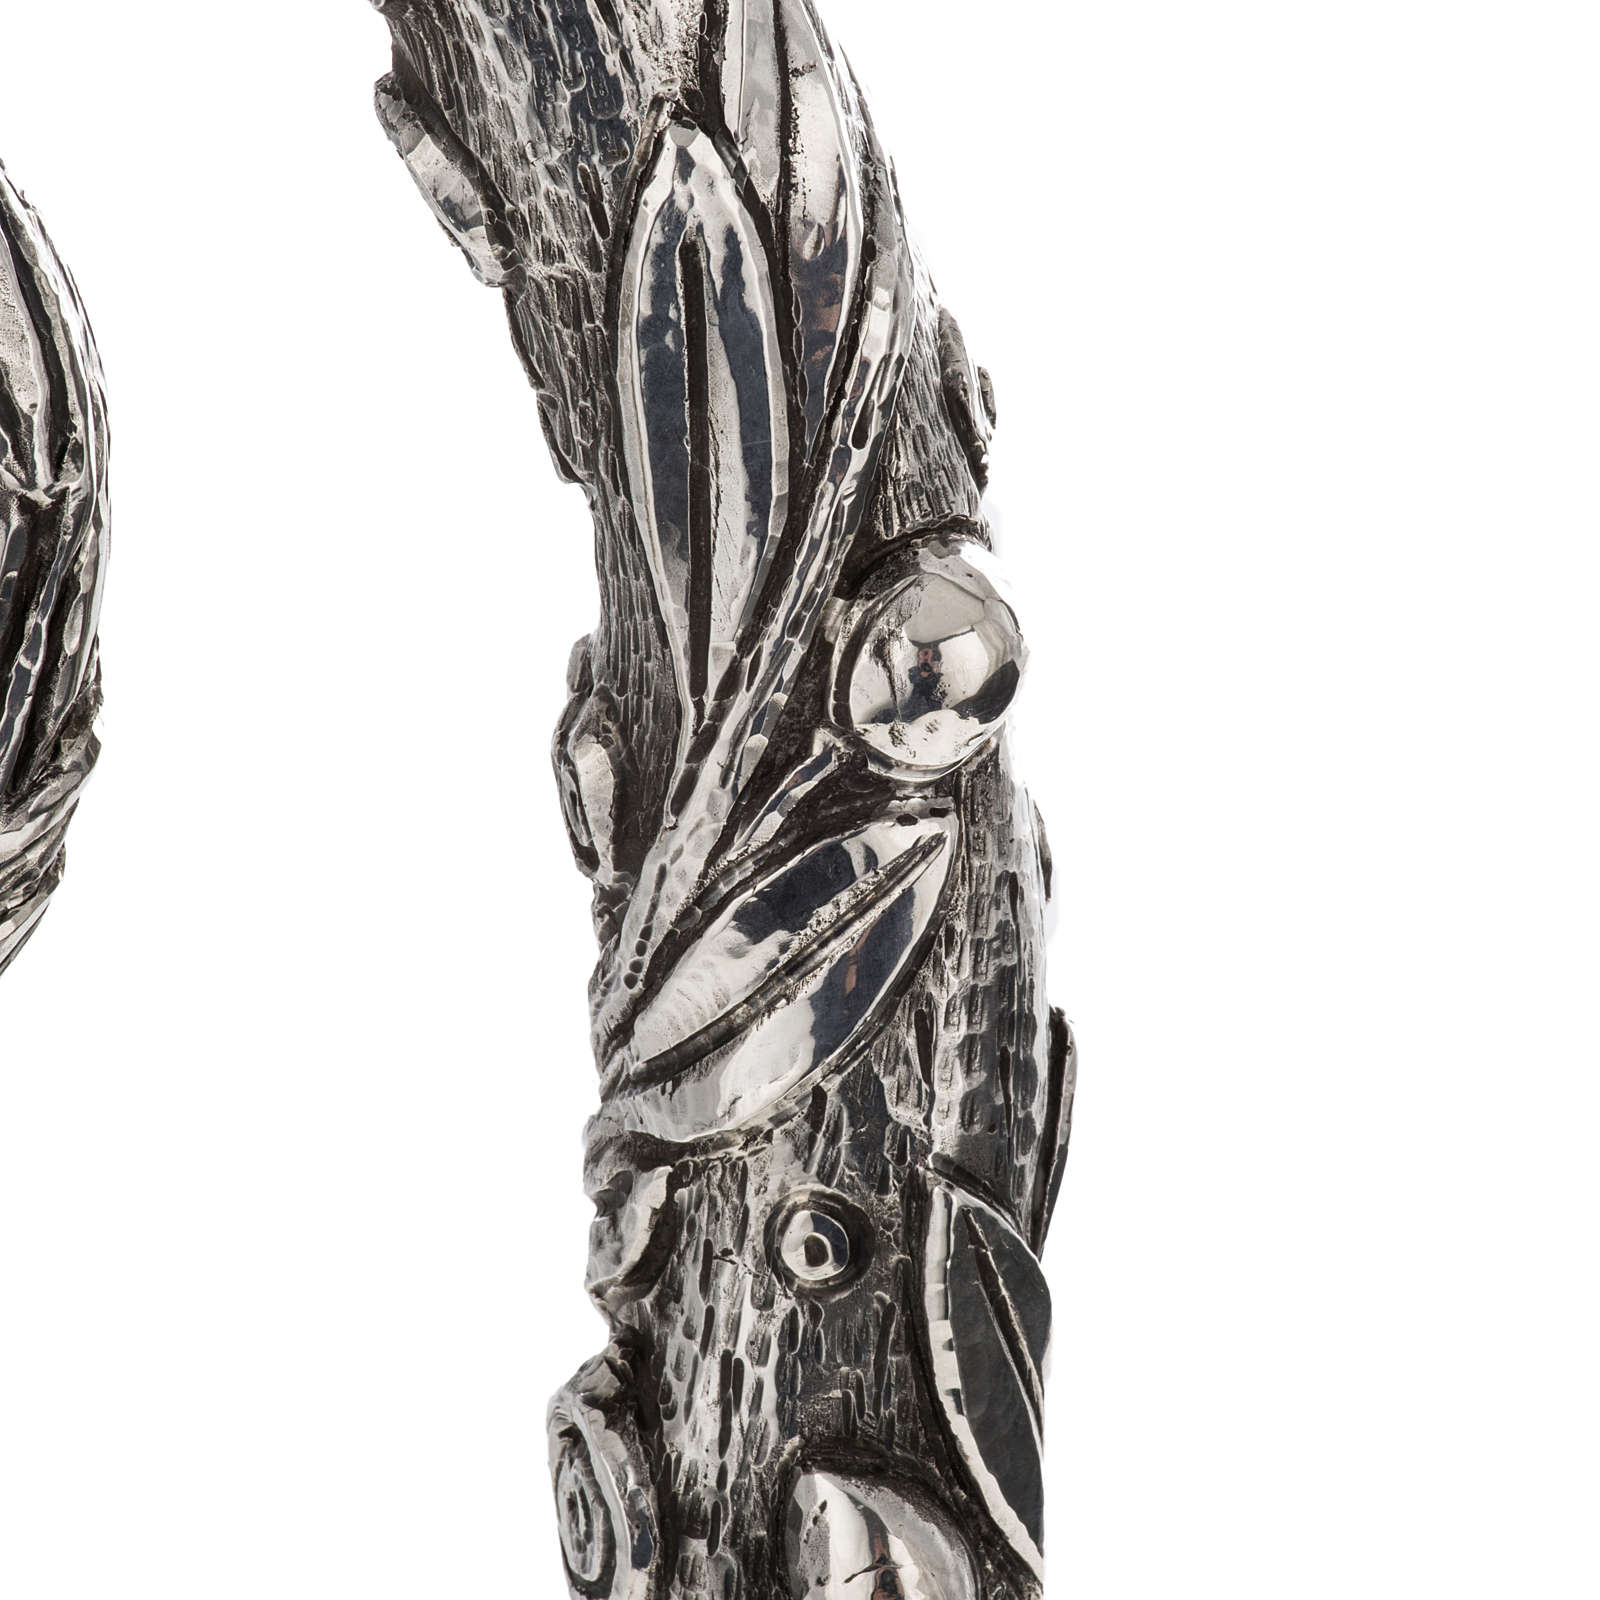 Crozier in 966 silver, electroforming, olive tree model 3